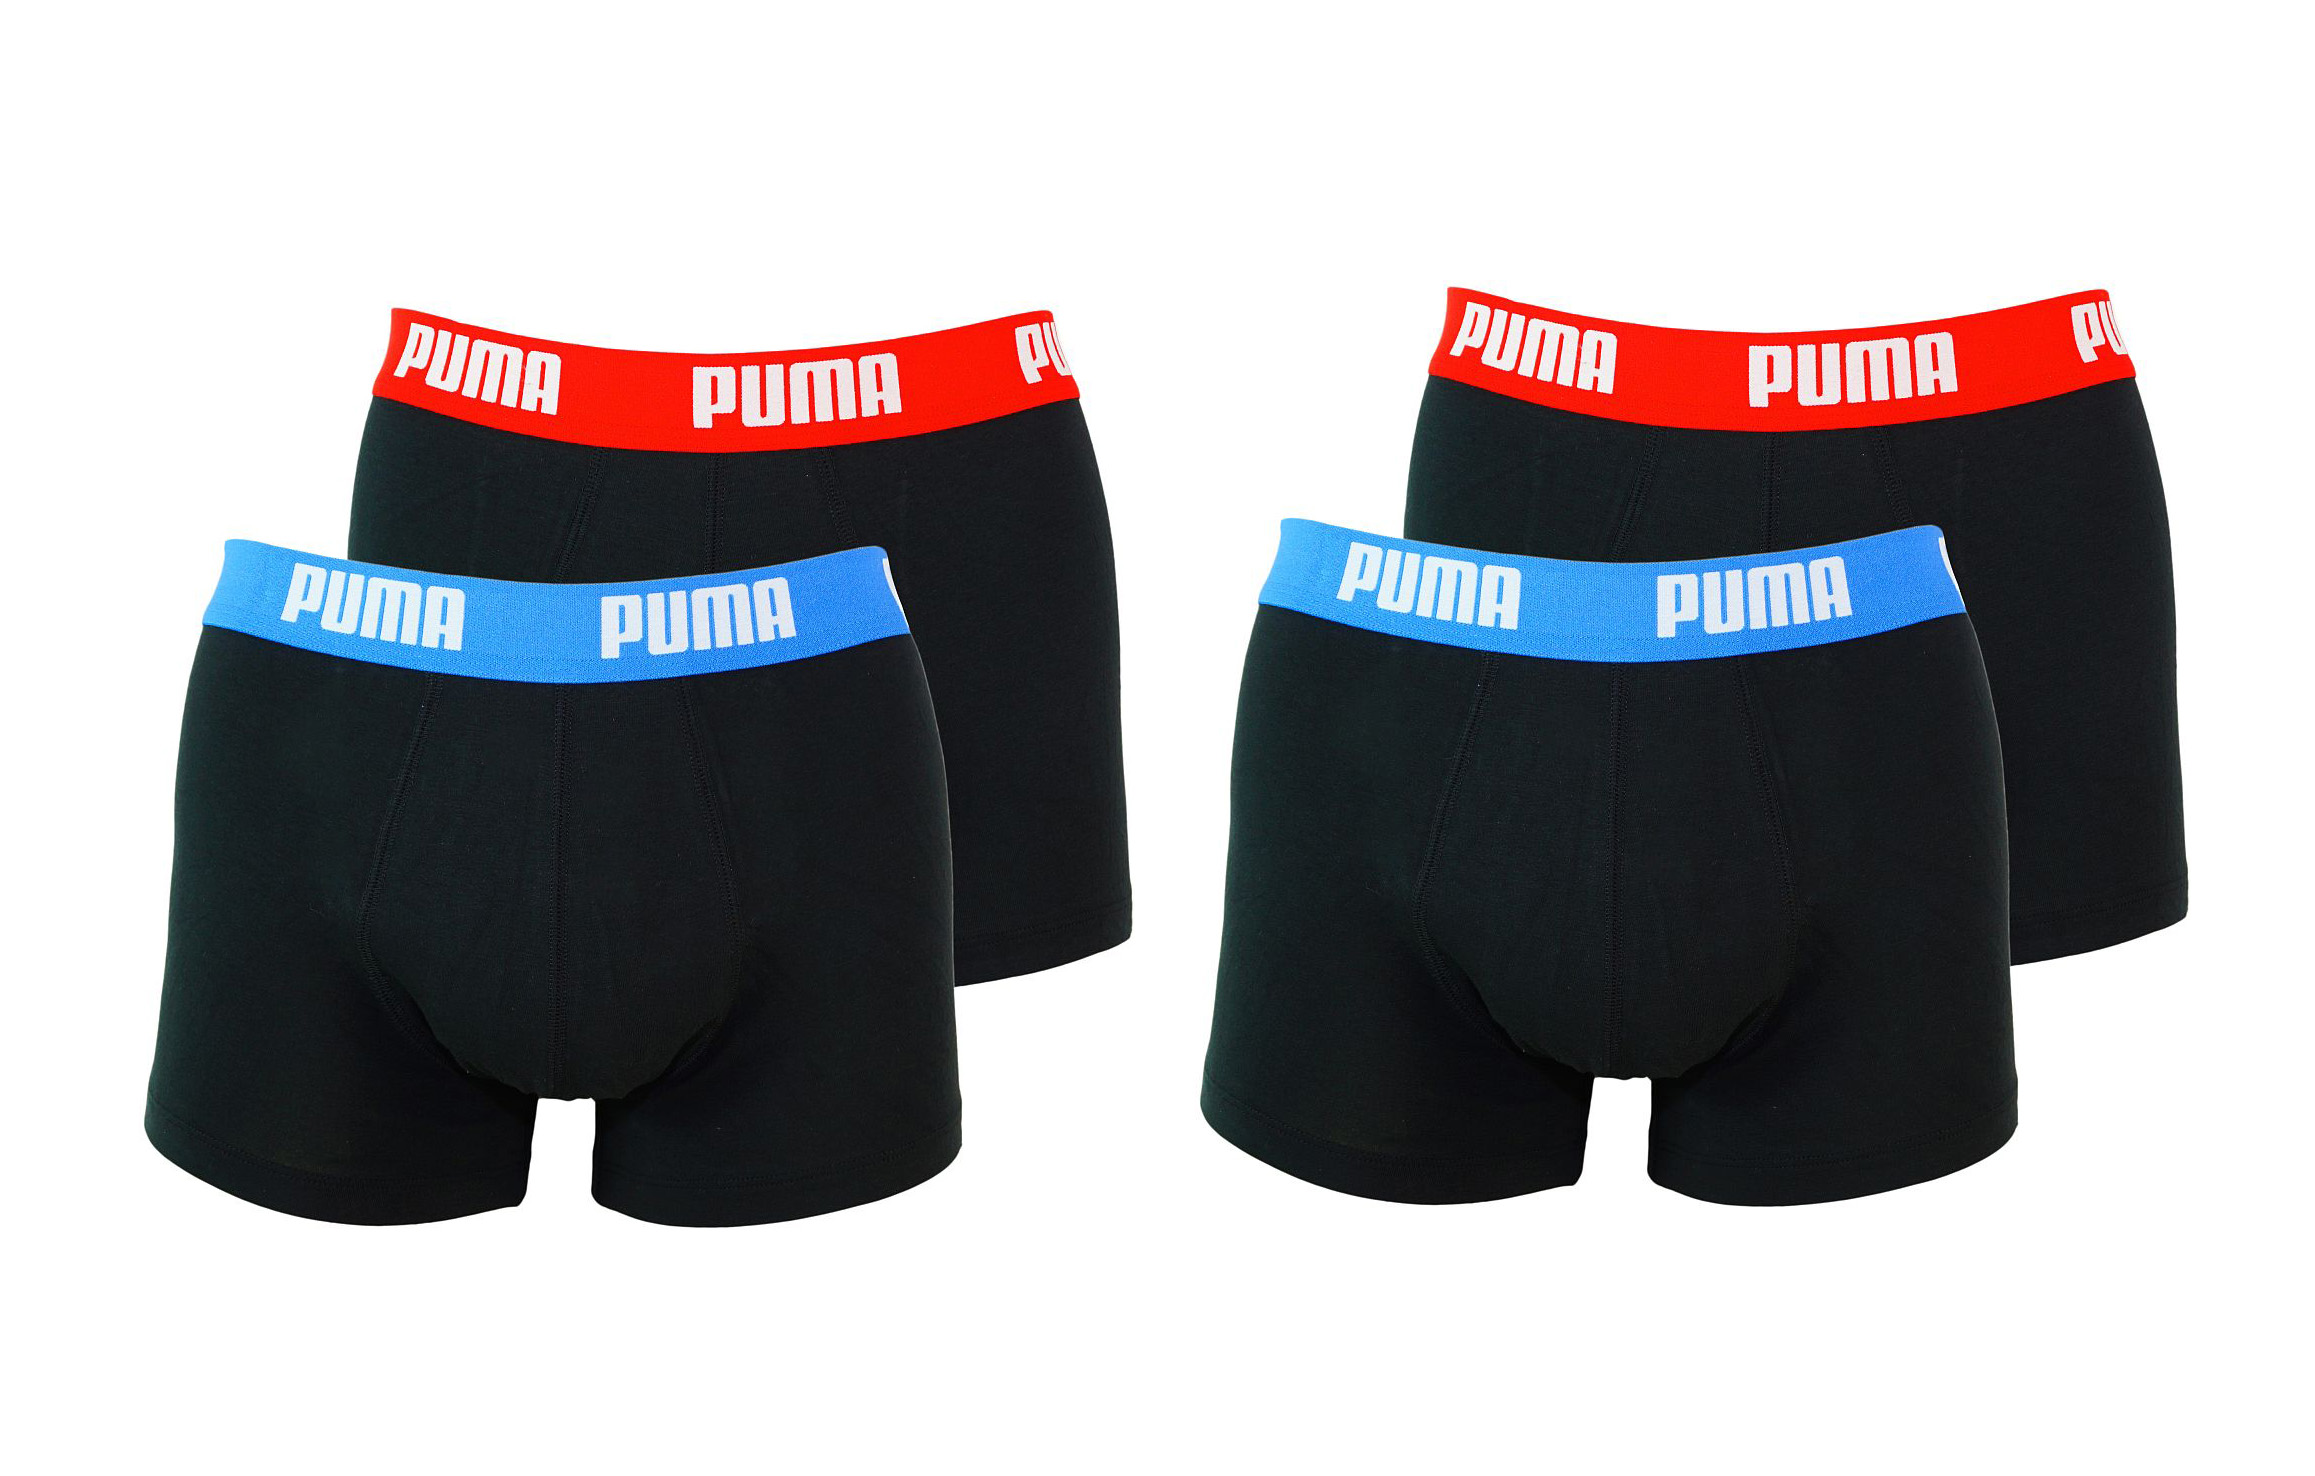 PUMA Shorts Unterhosen 2 x 2er Pack Trunk 521025001 505 020 red, blue SF17-PMS2